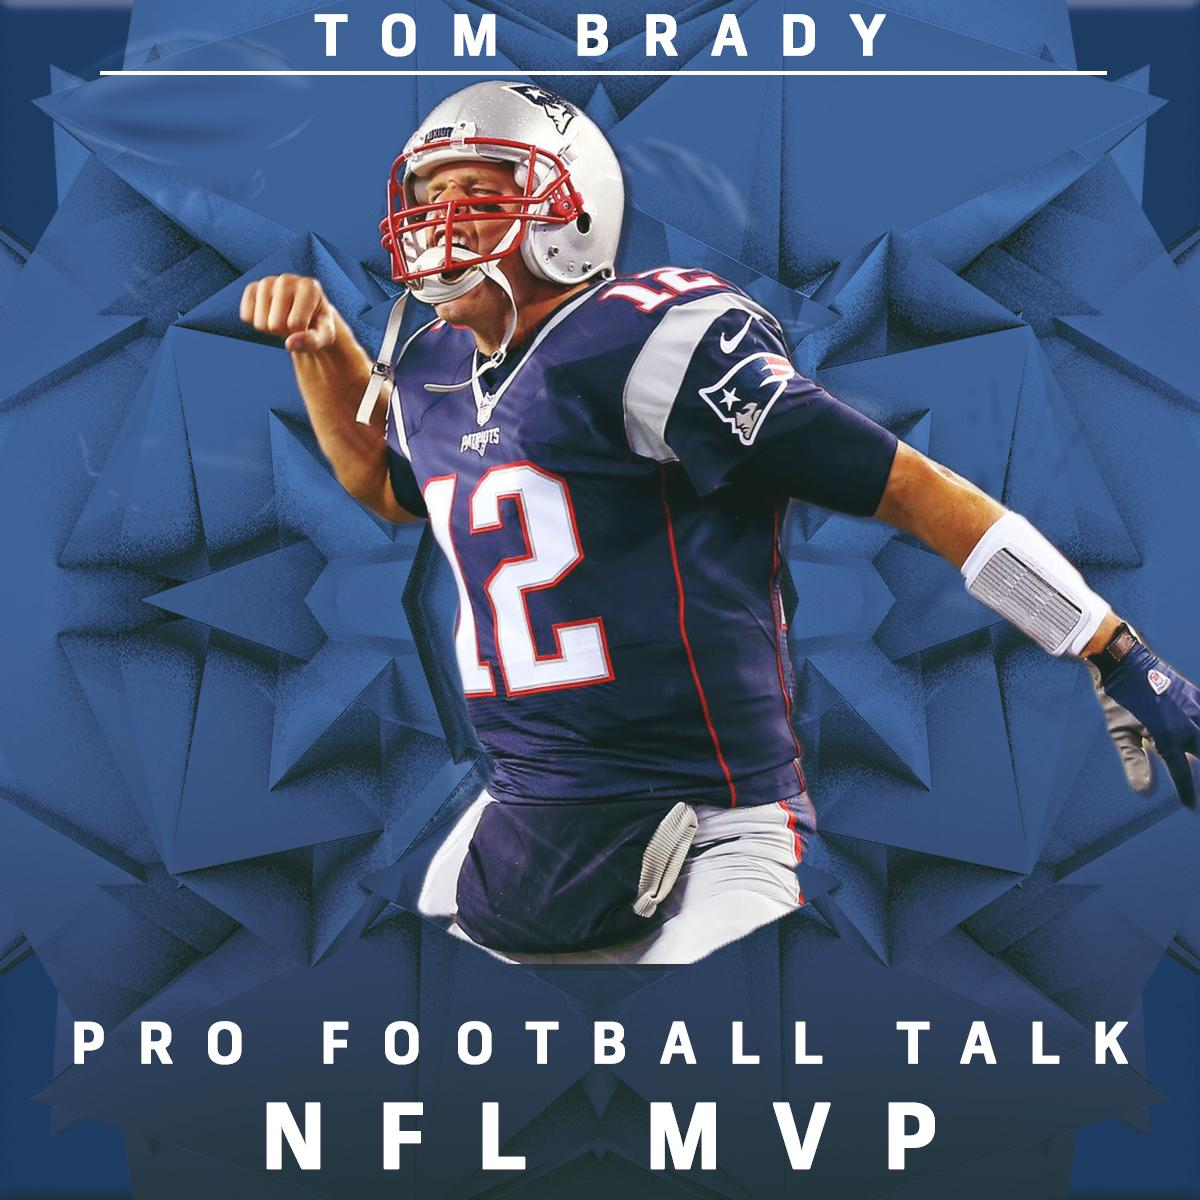 With 4,577 yards and 32 TDs, @Patriots QB Tom Brady has been named @ProFootballTalk MVP. https://t.co/2mt7nBxFI7 https://t.co/6jluI7R88w